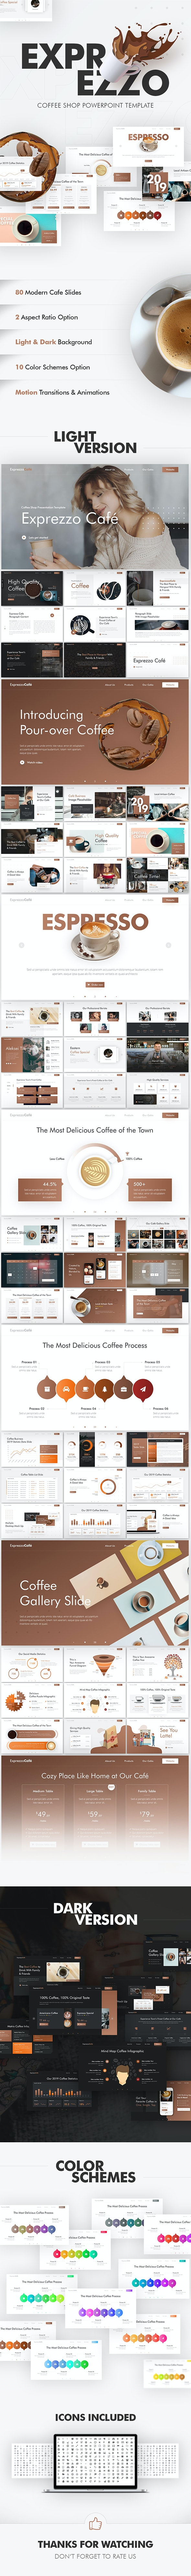 Exprezzo Cafe PowerPoint Template - PowerPoint Templates Presentation Templates